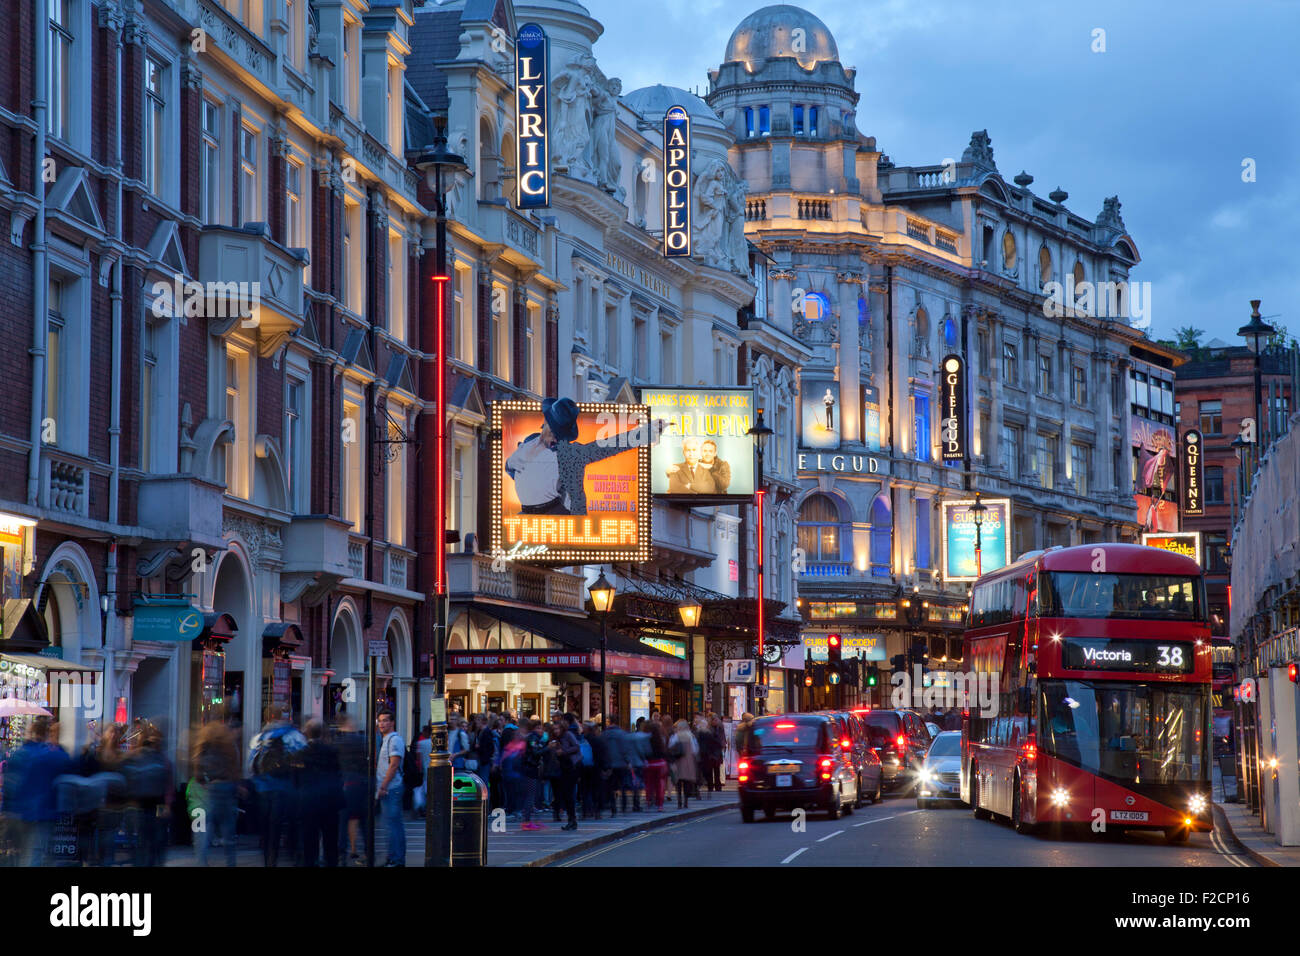 London Theatreland at night, Shaftesbury Avenue, with bus and crowds of people - Stock Image